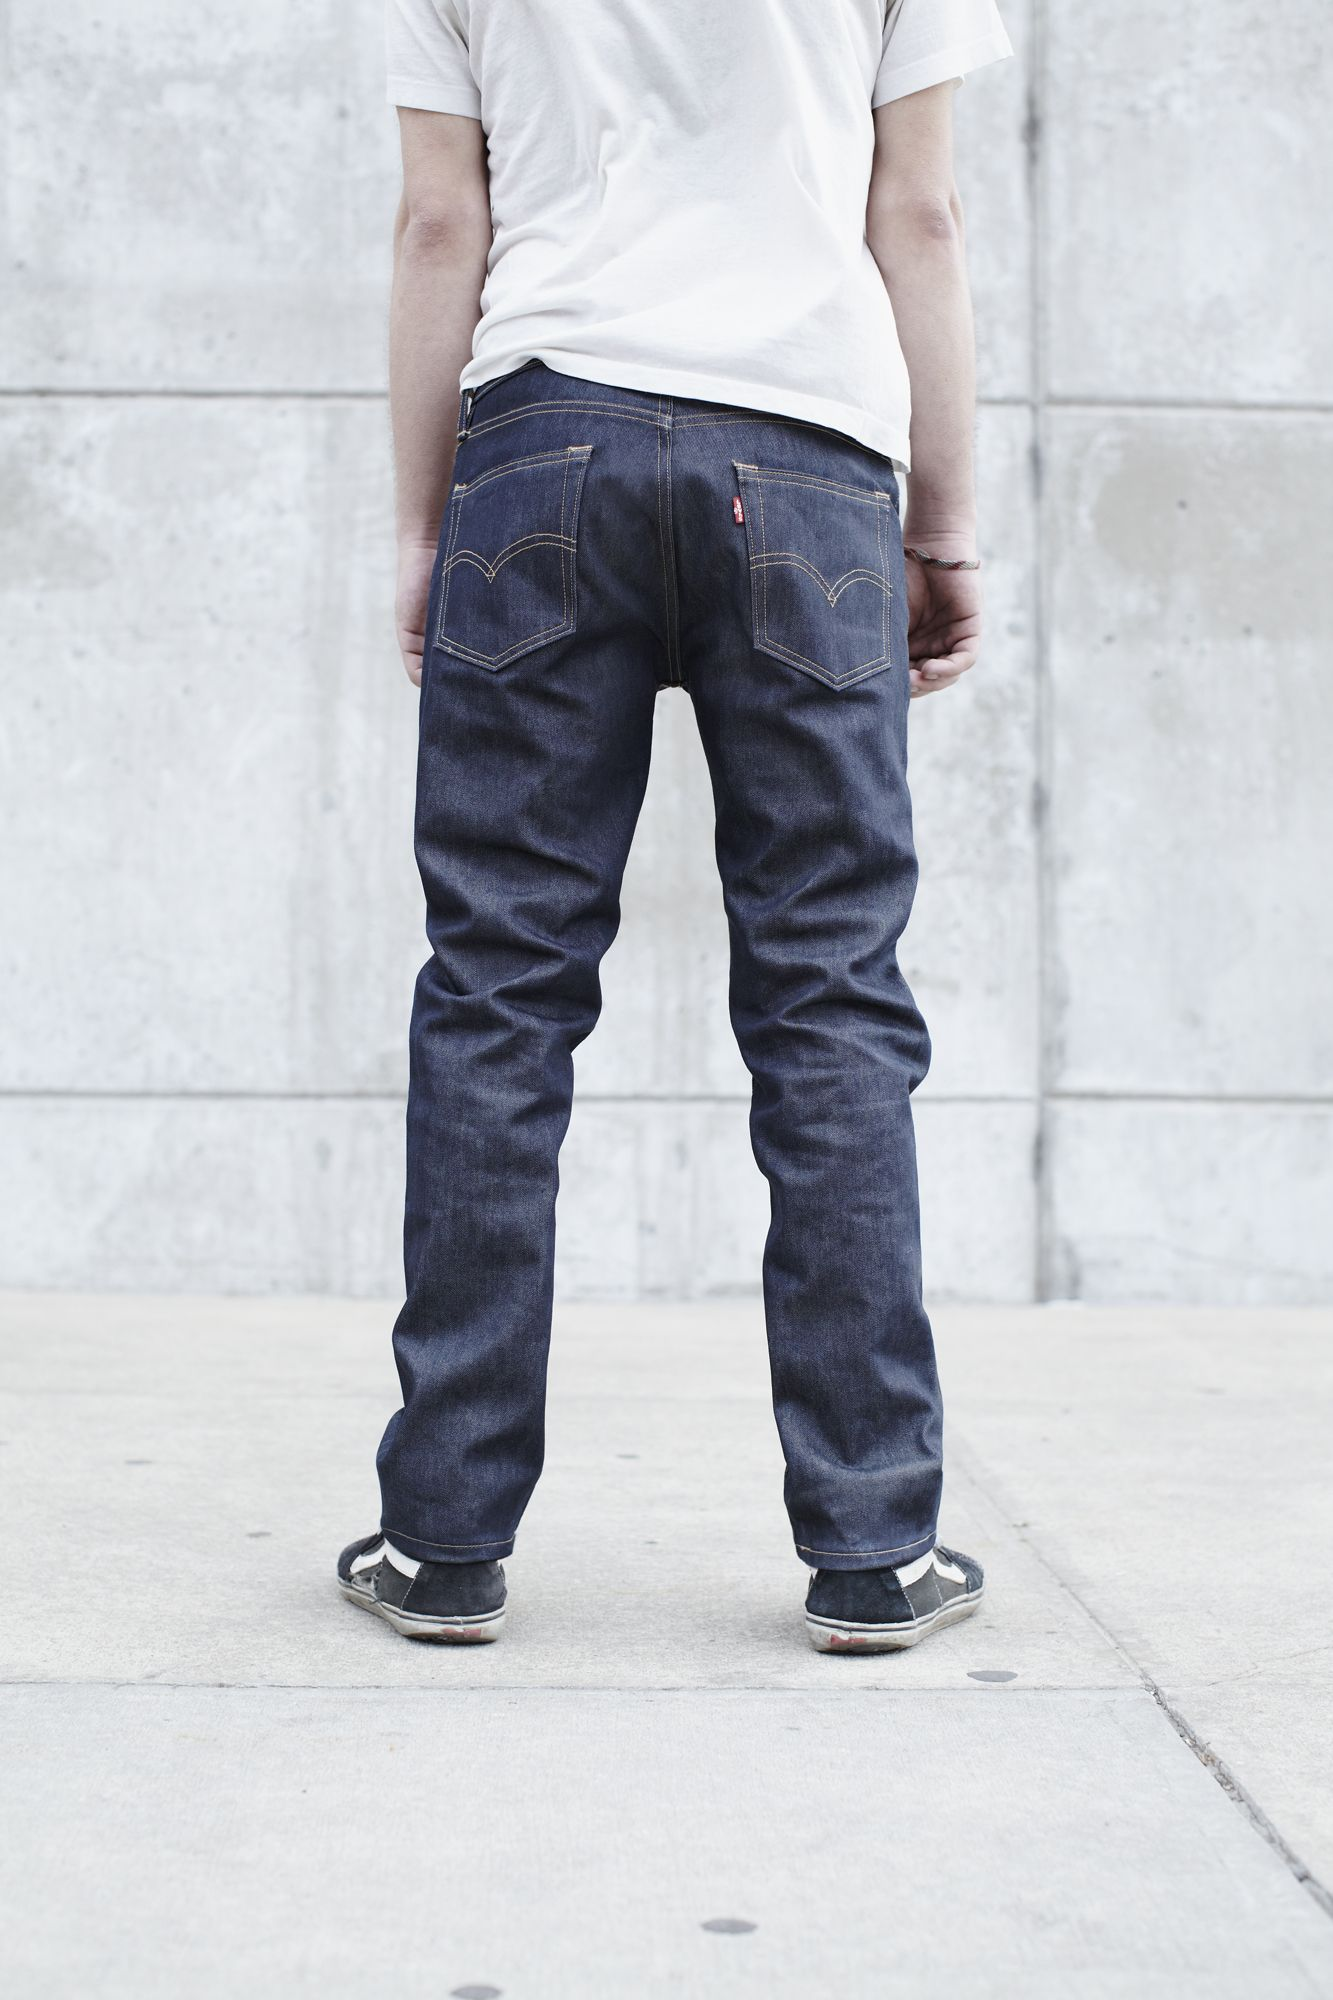 b2931f3631d The Levi s Skateboarding 511 Jean. Levi s Skateboarding Jeans and Work Pants  combine strong